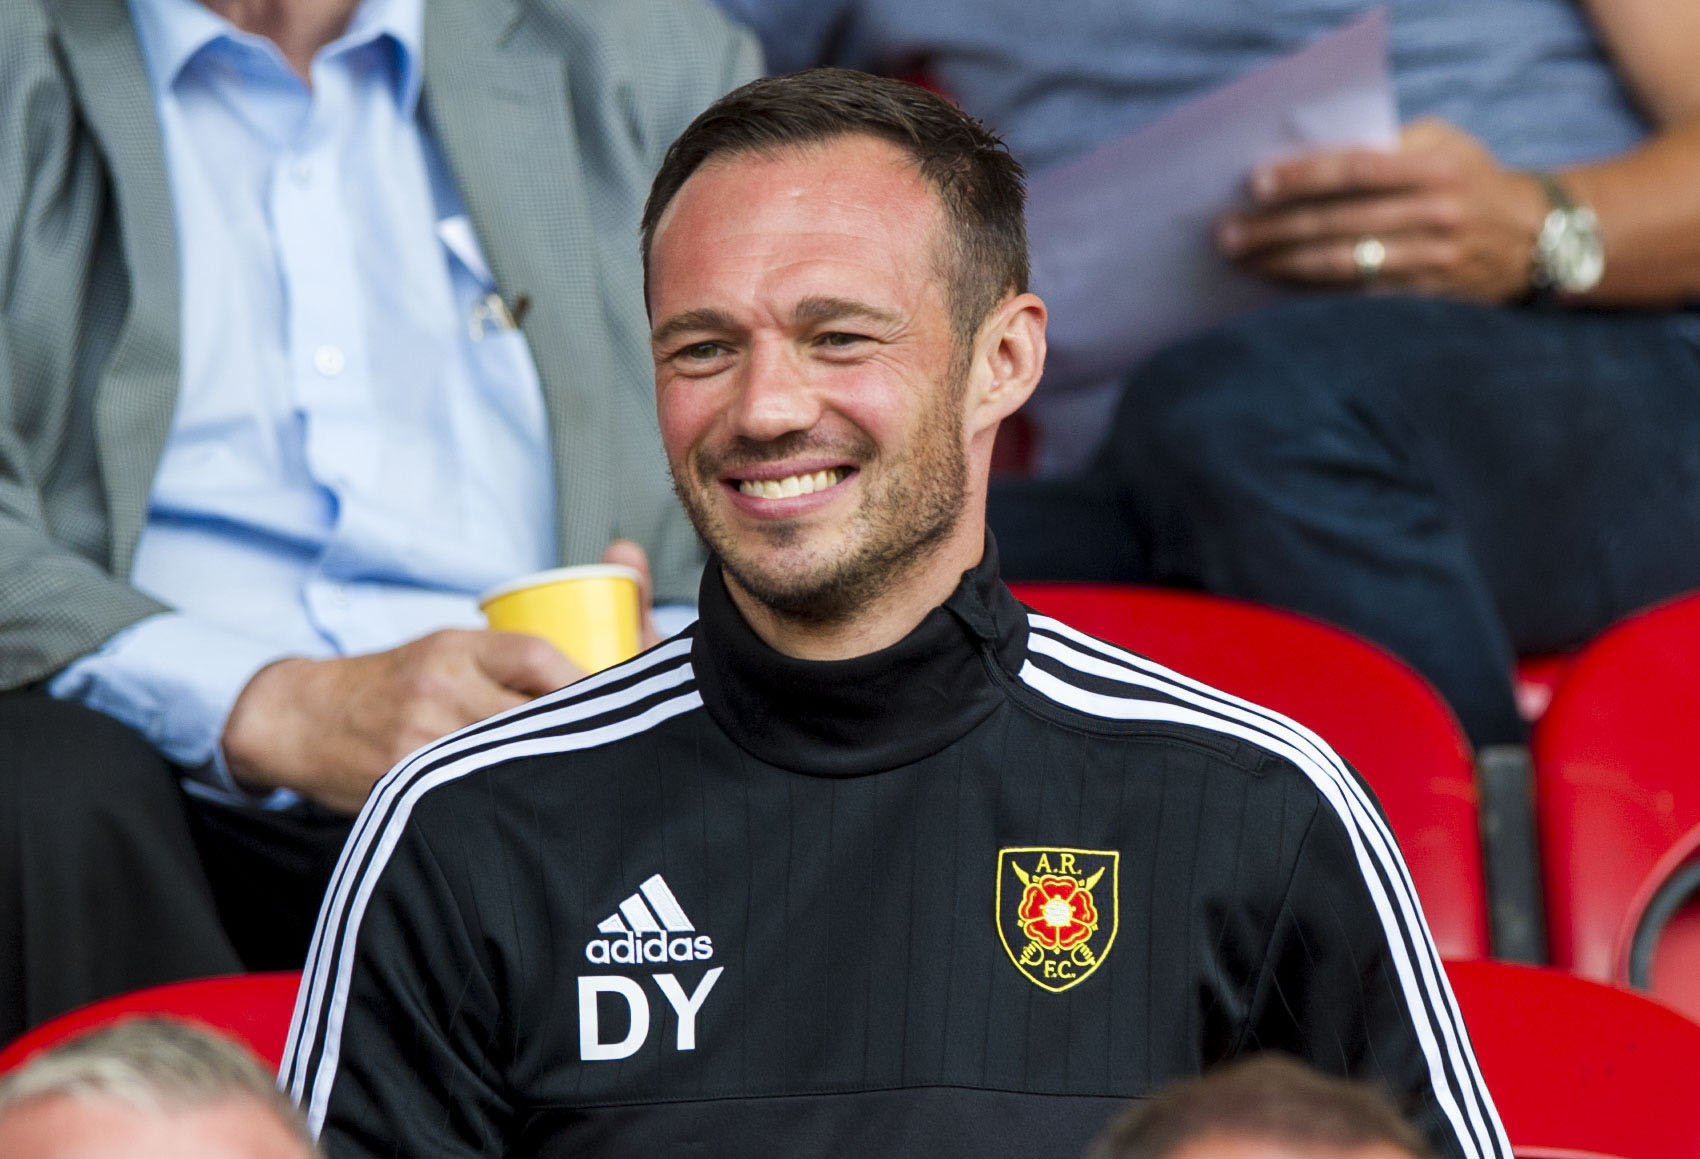 East Fife boss Darren Young is dreaming of full time job and shocking Rangers